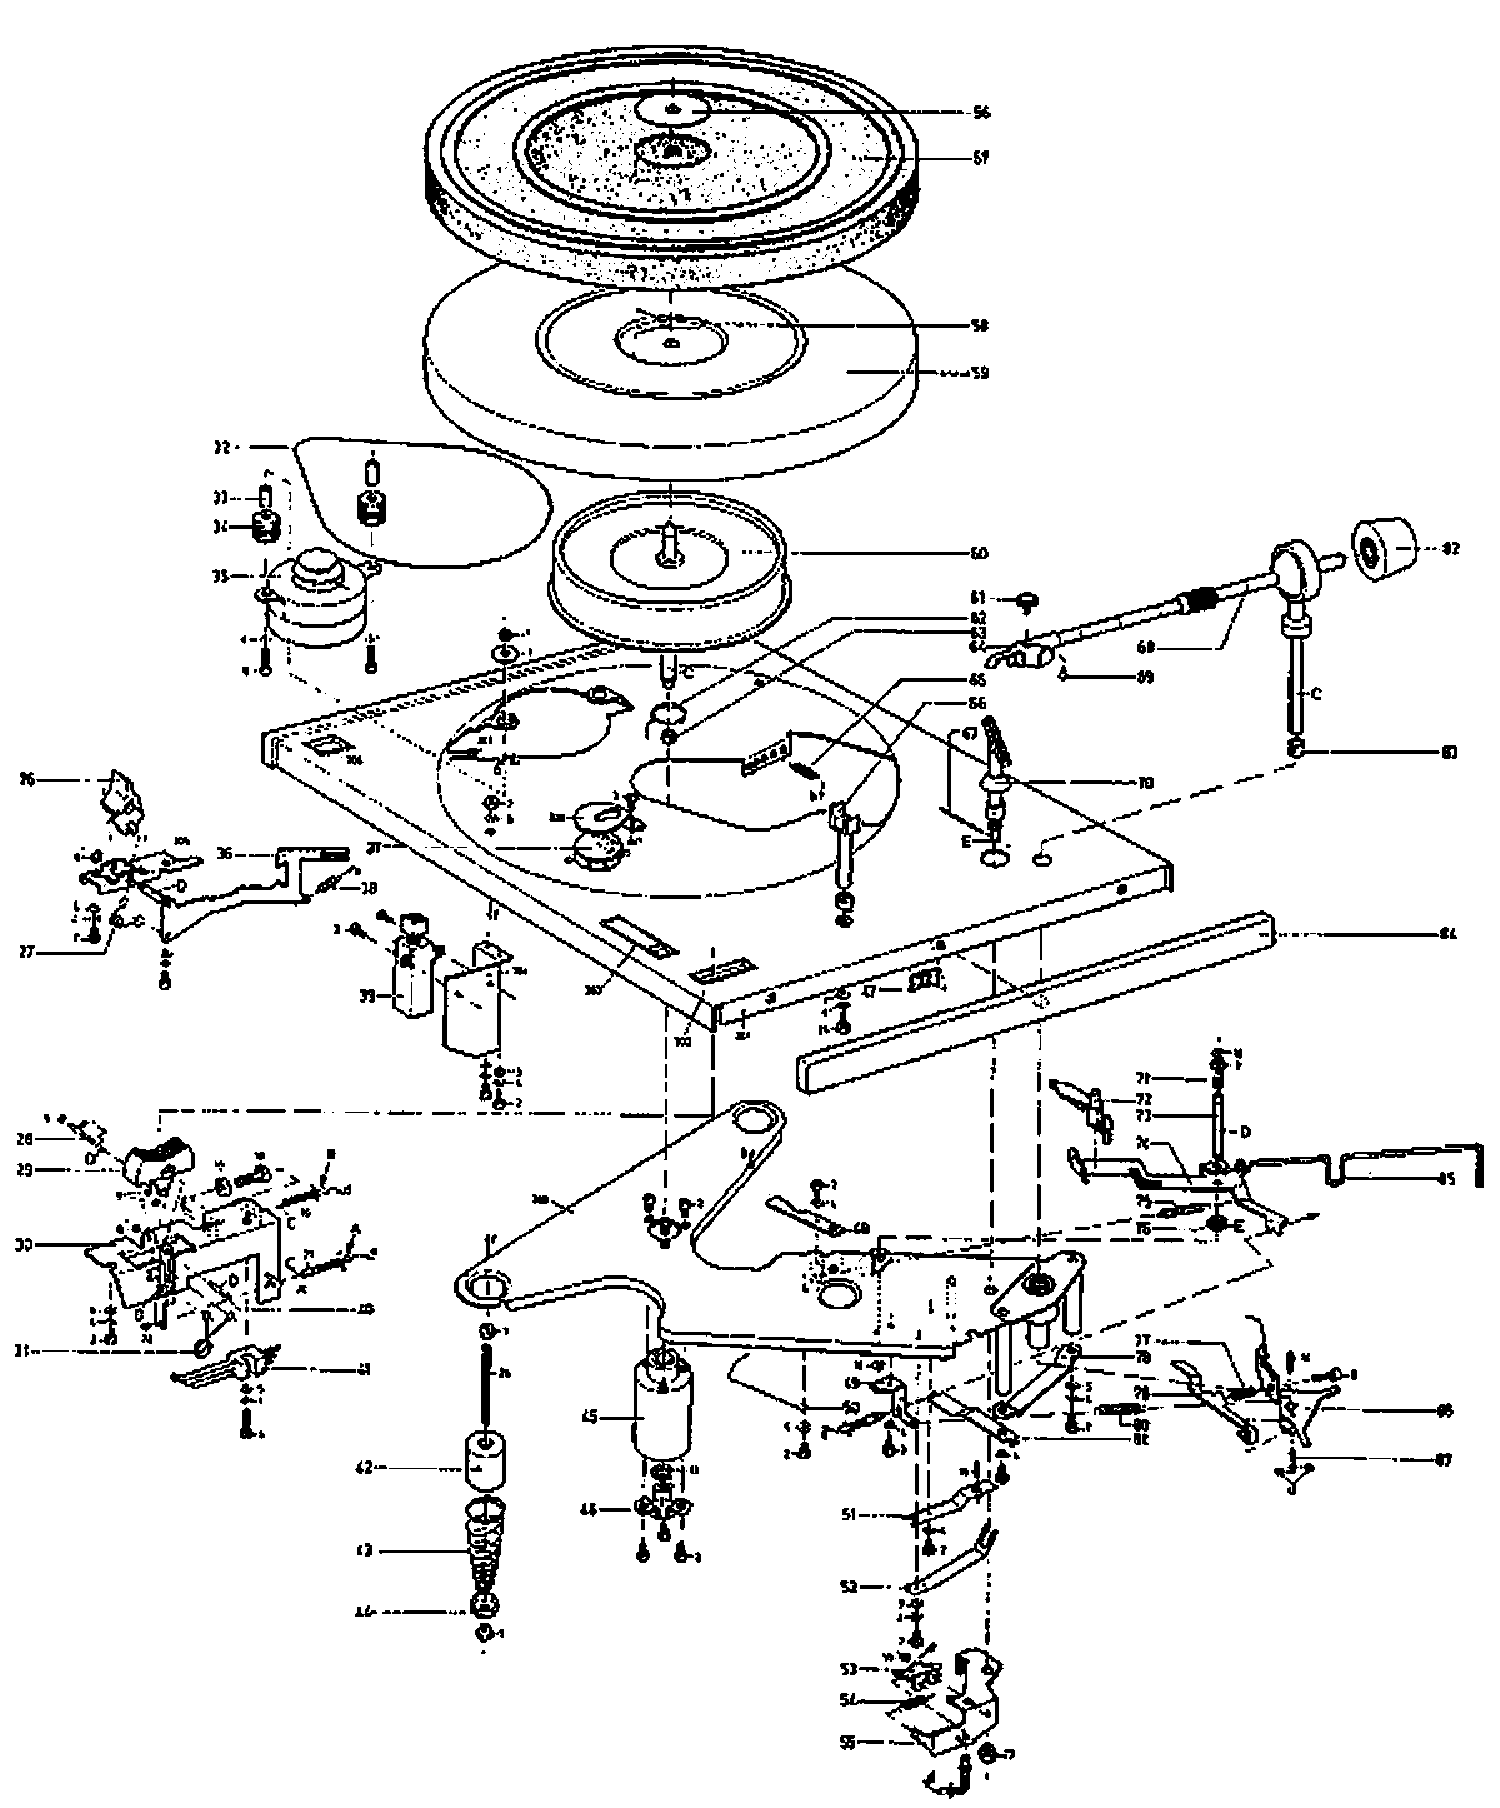 Generous saab 9000 wiring diagram photos wiring diagram ideas